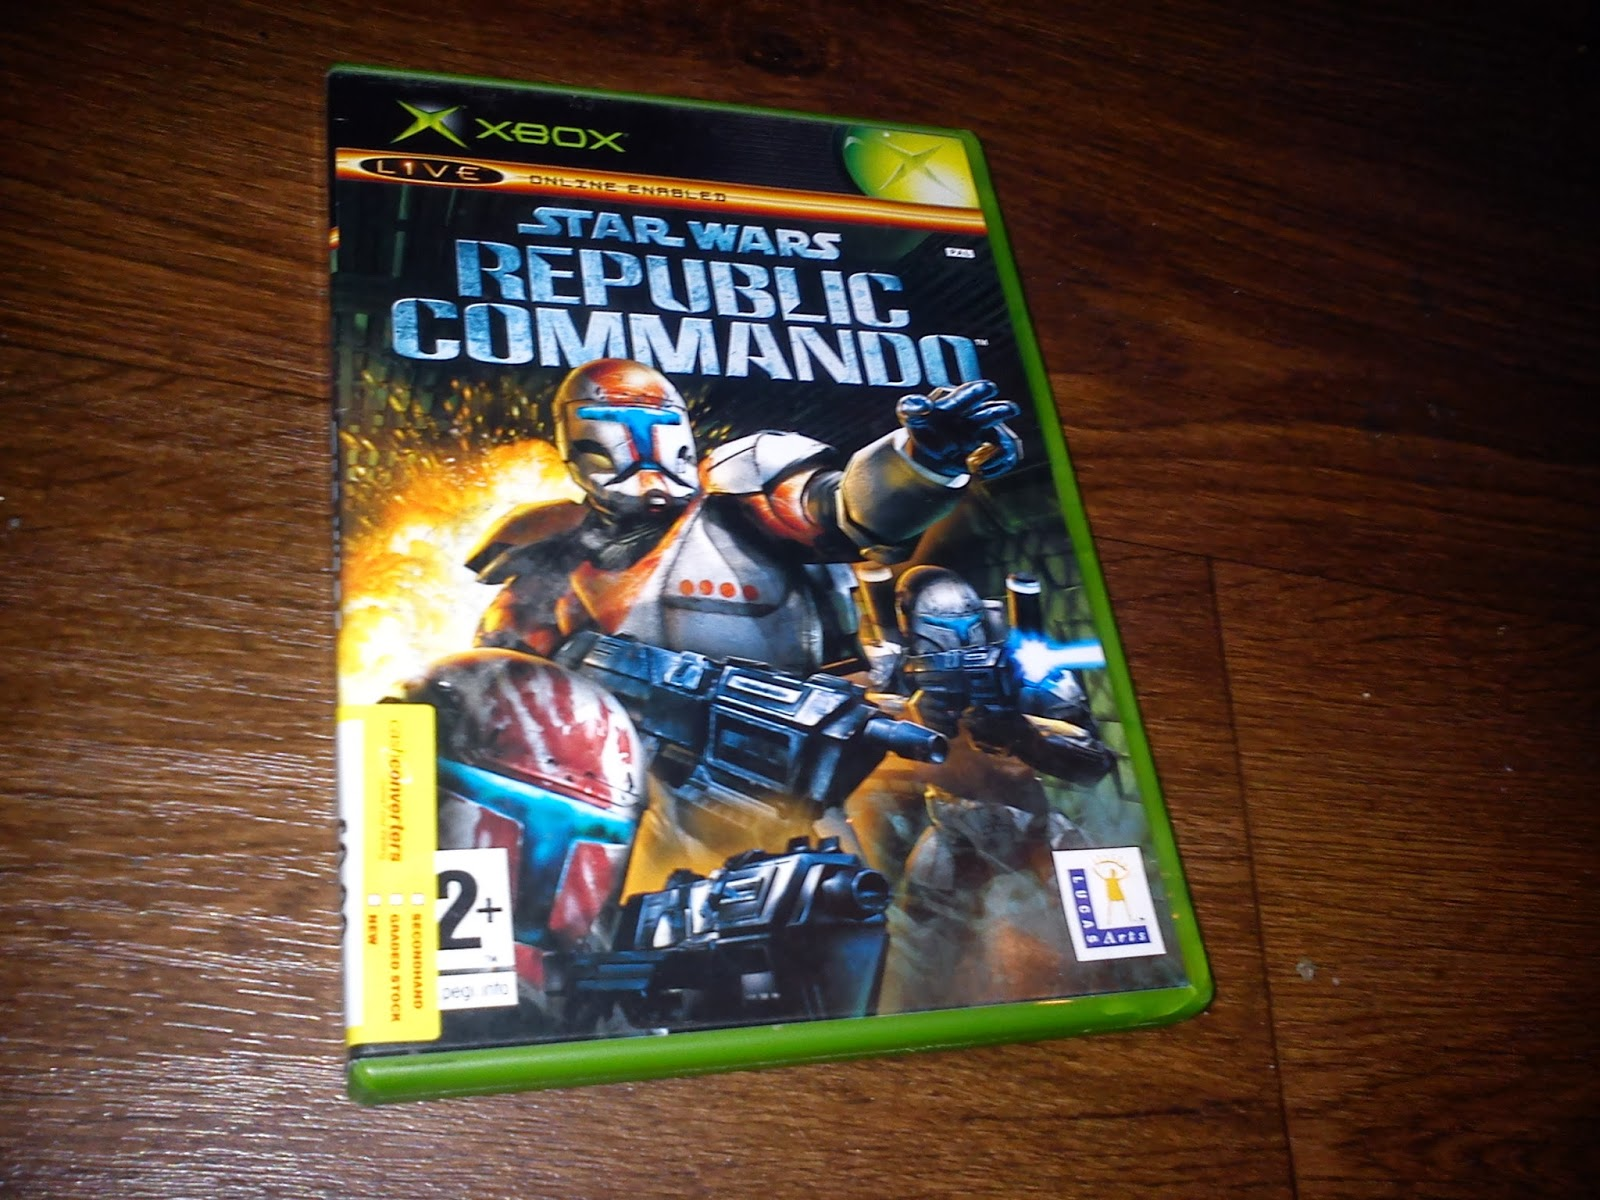 Back in Cash converters for a bit of Star Wars Republic commando for 99p It